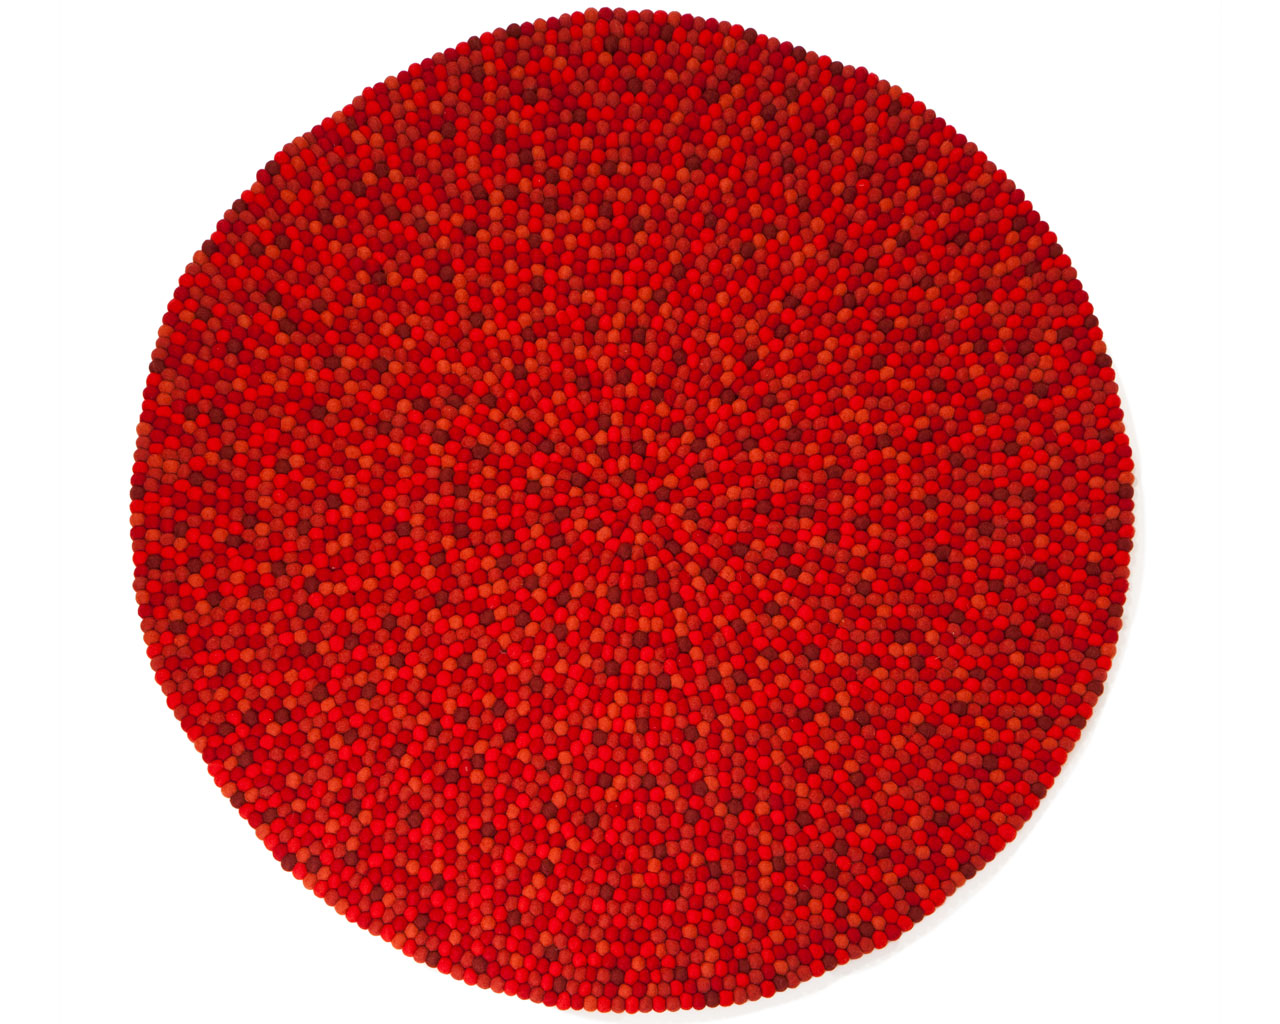 red felt ball carpet hay wool floor design